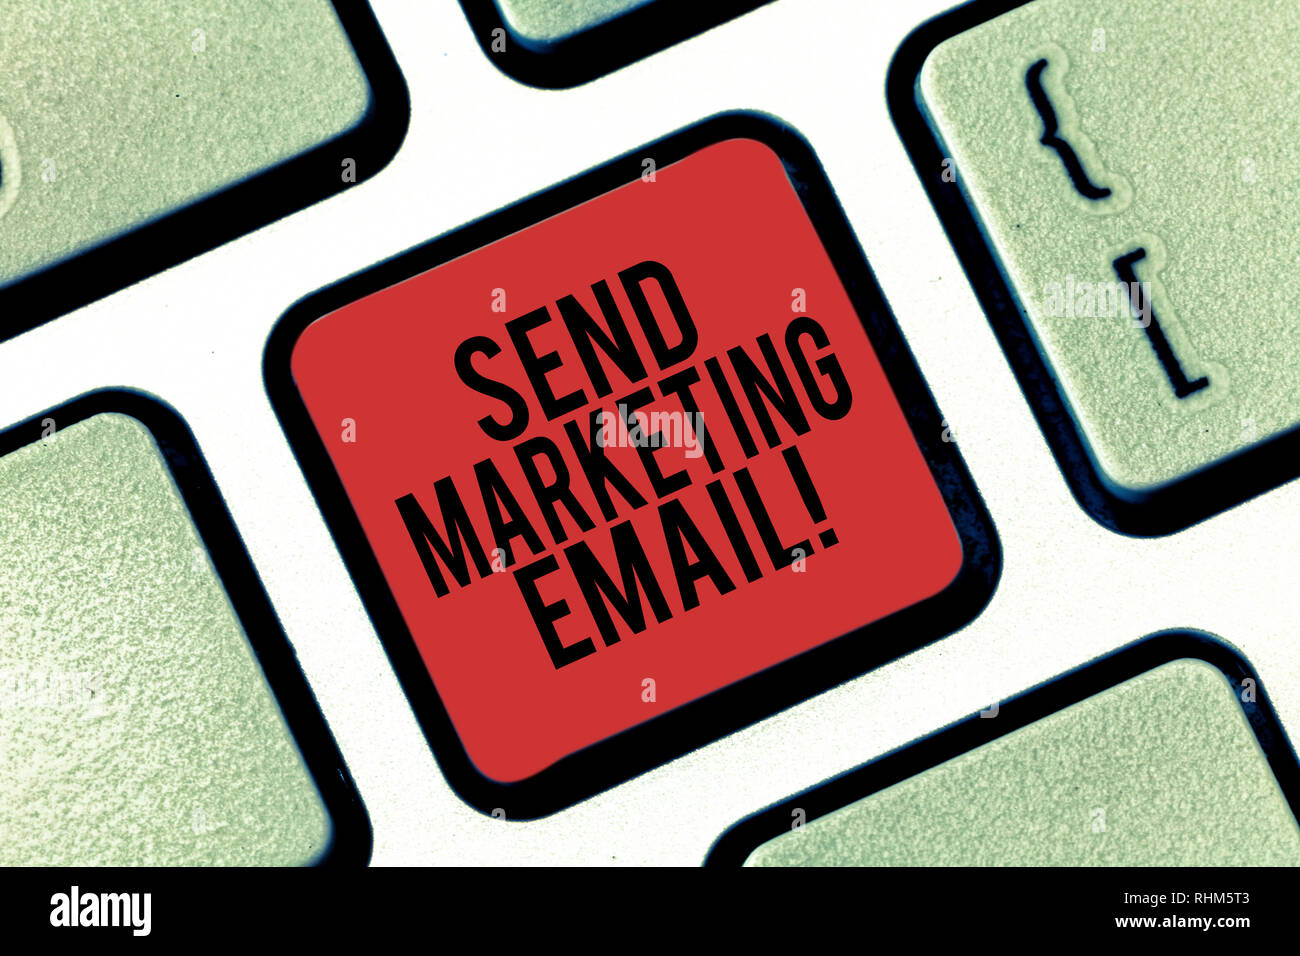 Electronic Mail Stock Photos & Electronic Mail Stock Images